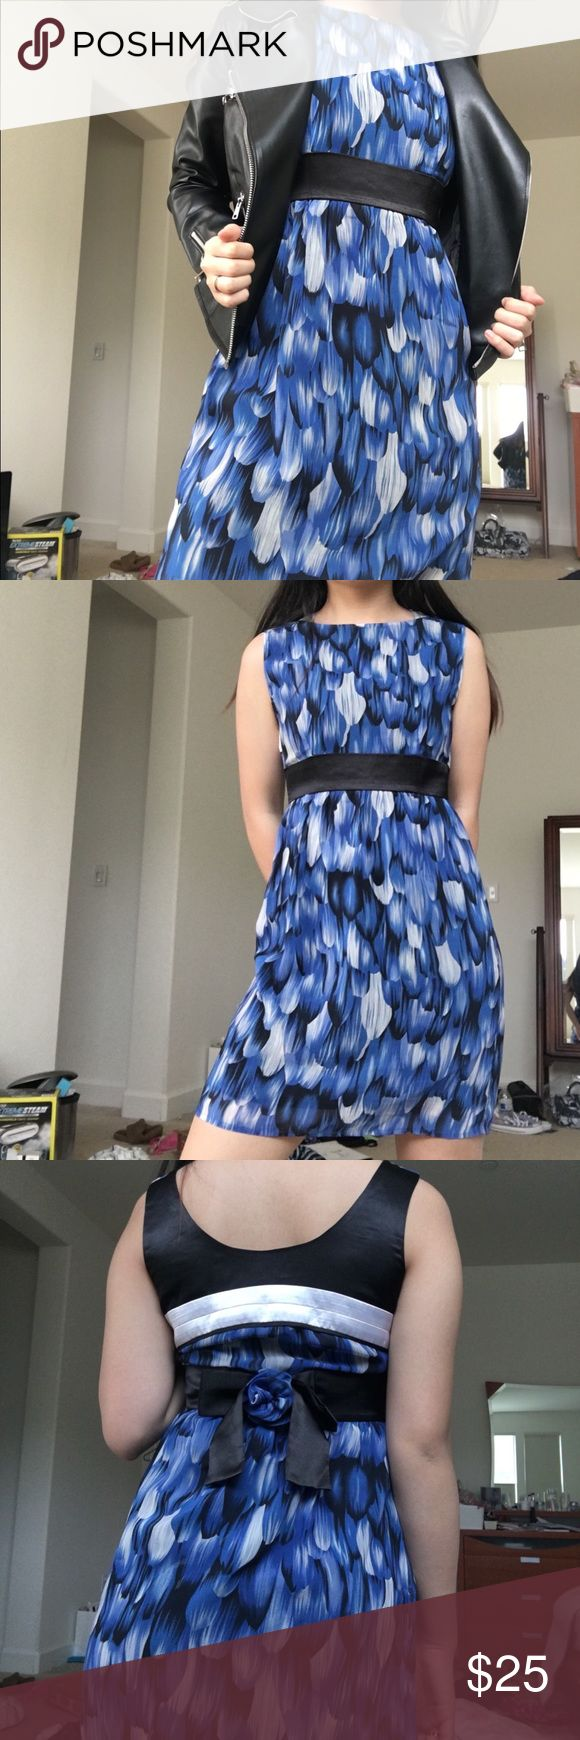 Royal Blue Patterned Dress Gorgeous blue, black, and white patterned dress! Bow detailing on the back and above knee length. No flaws, styling option shown in the first picture. Marked as an XS and seen on a small. Perfect style and fit, can be dressed up or down for any occasion! Dresses